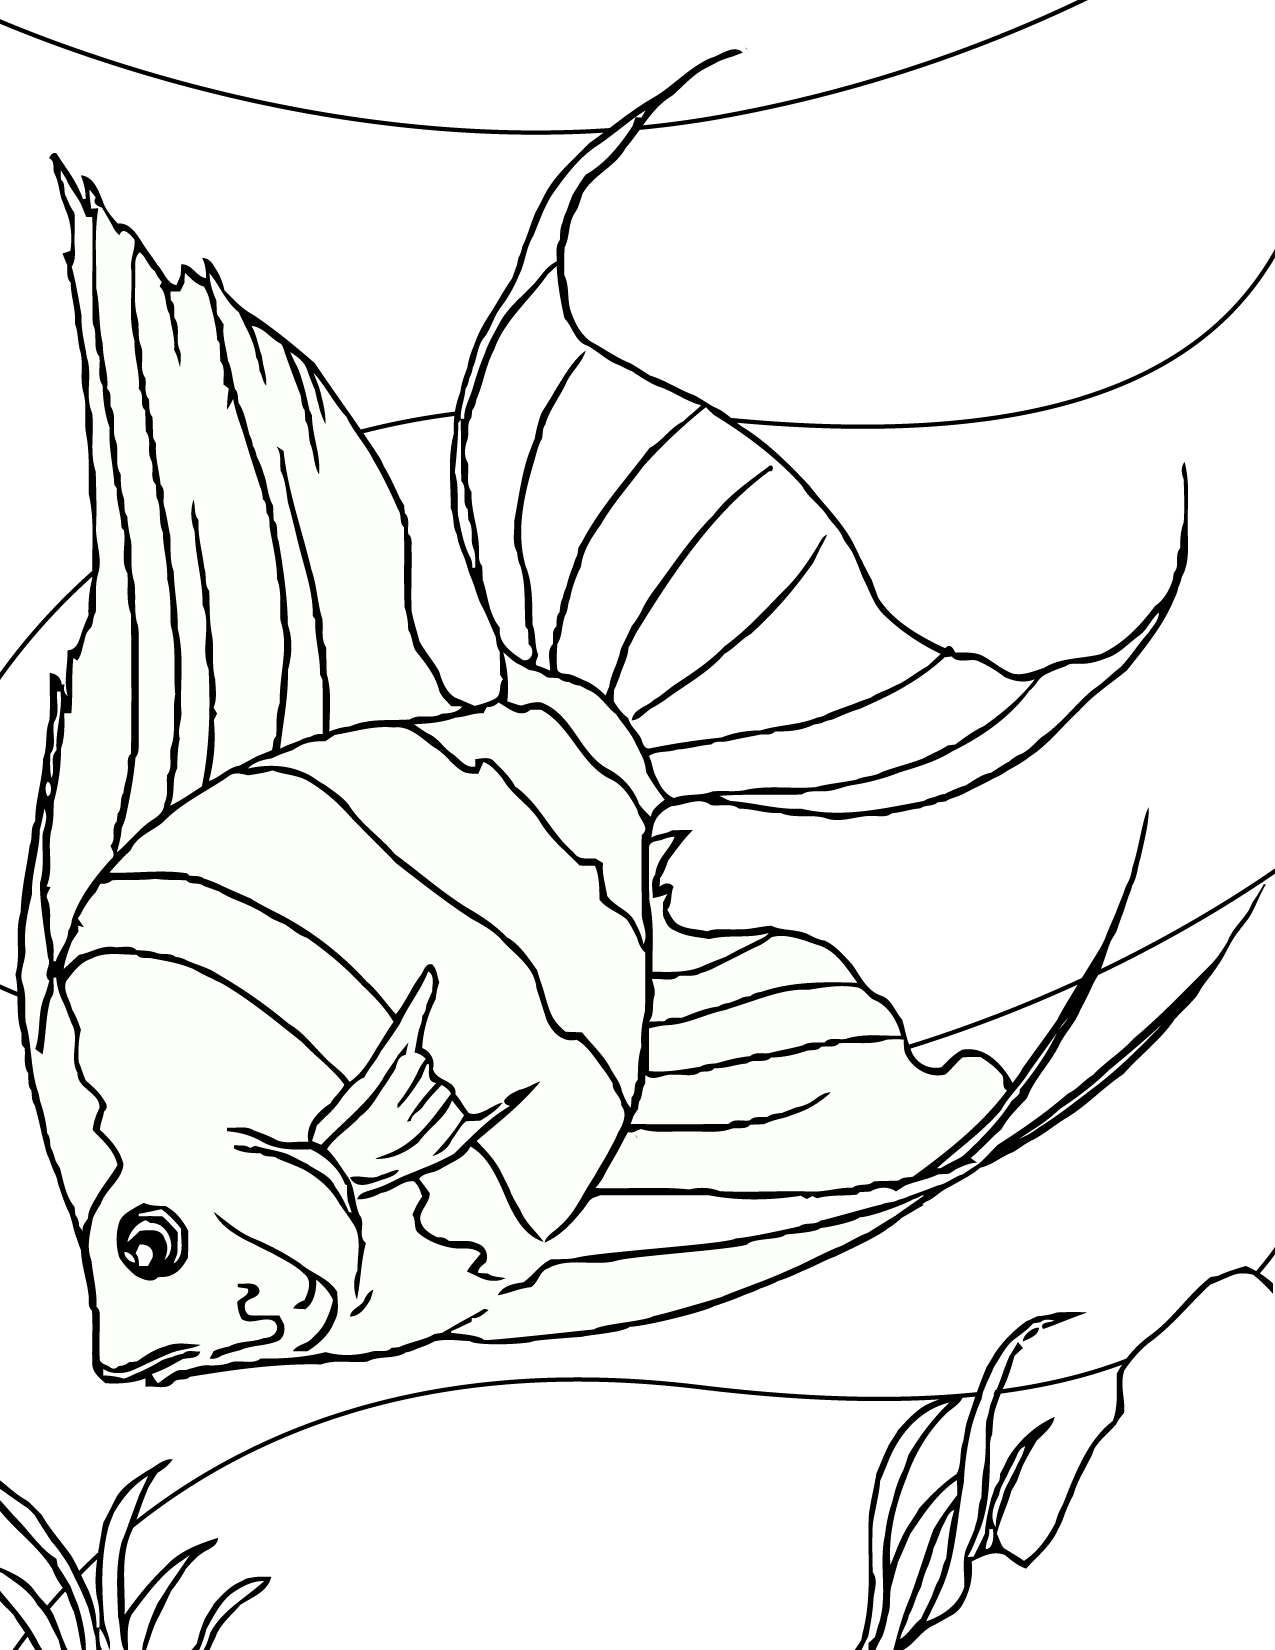 free coloring pages of fish - photo#9